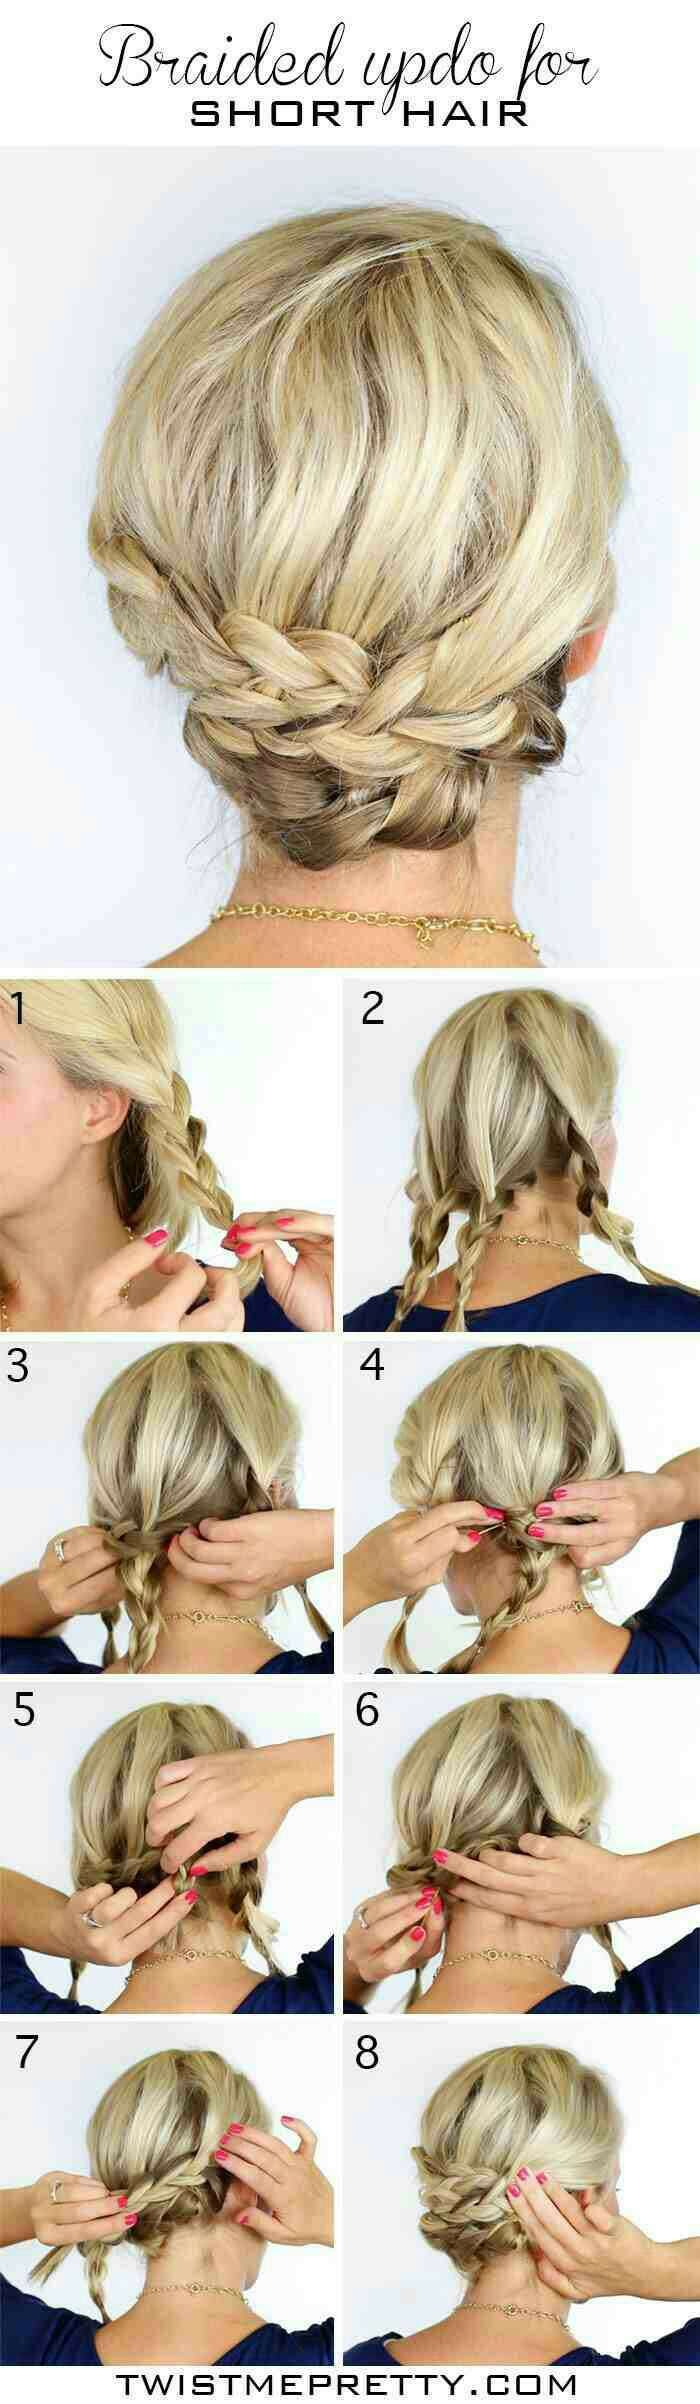 Hey new friends! thanks for the add!  Check this out,  cute updo for short hair.